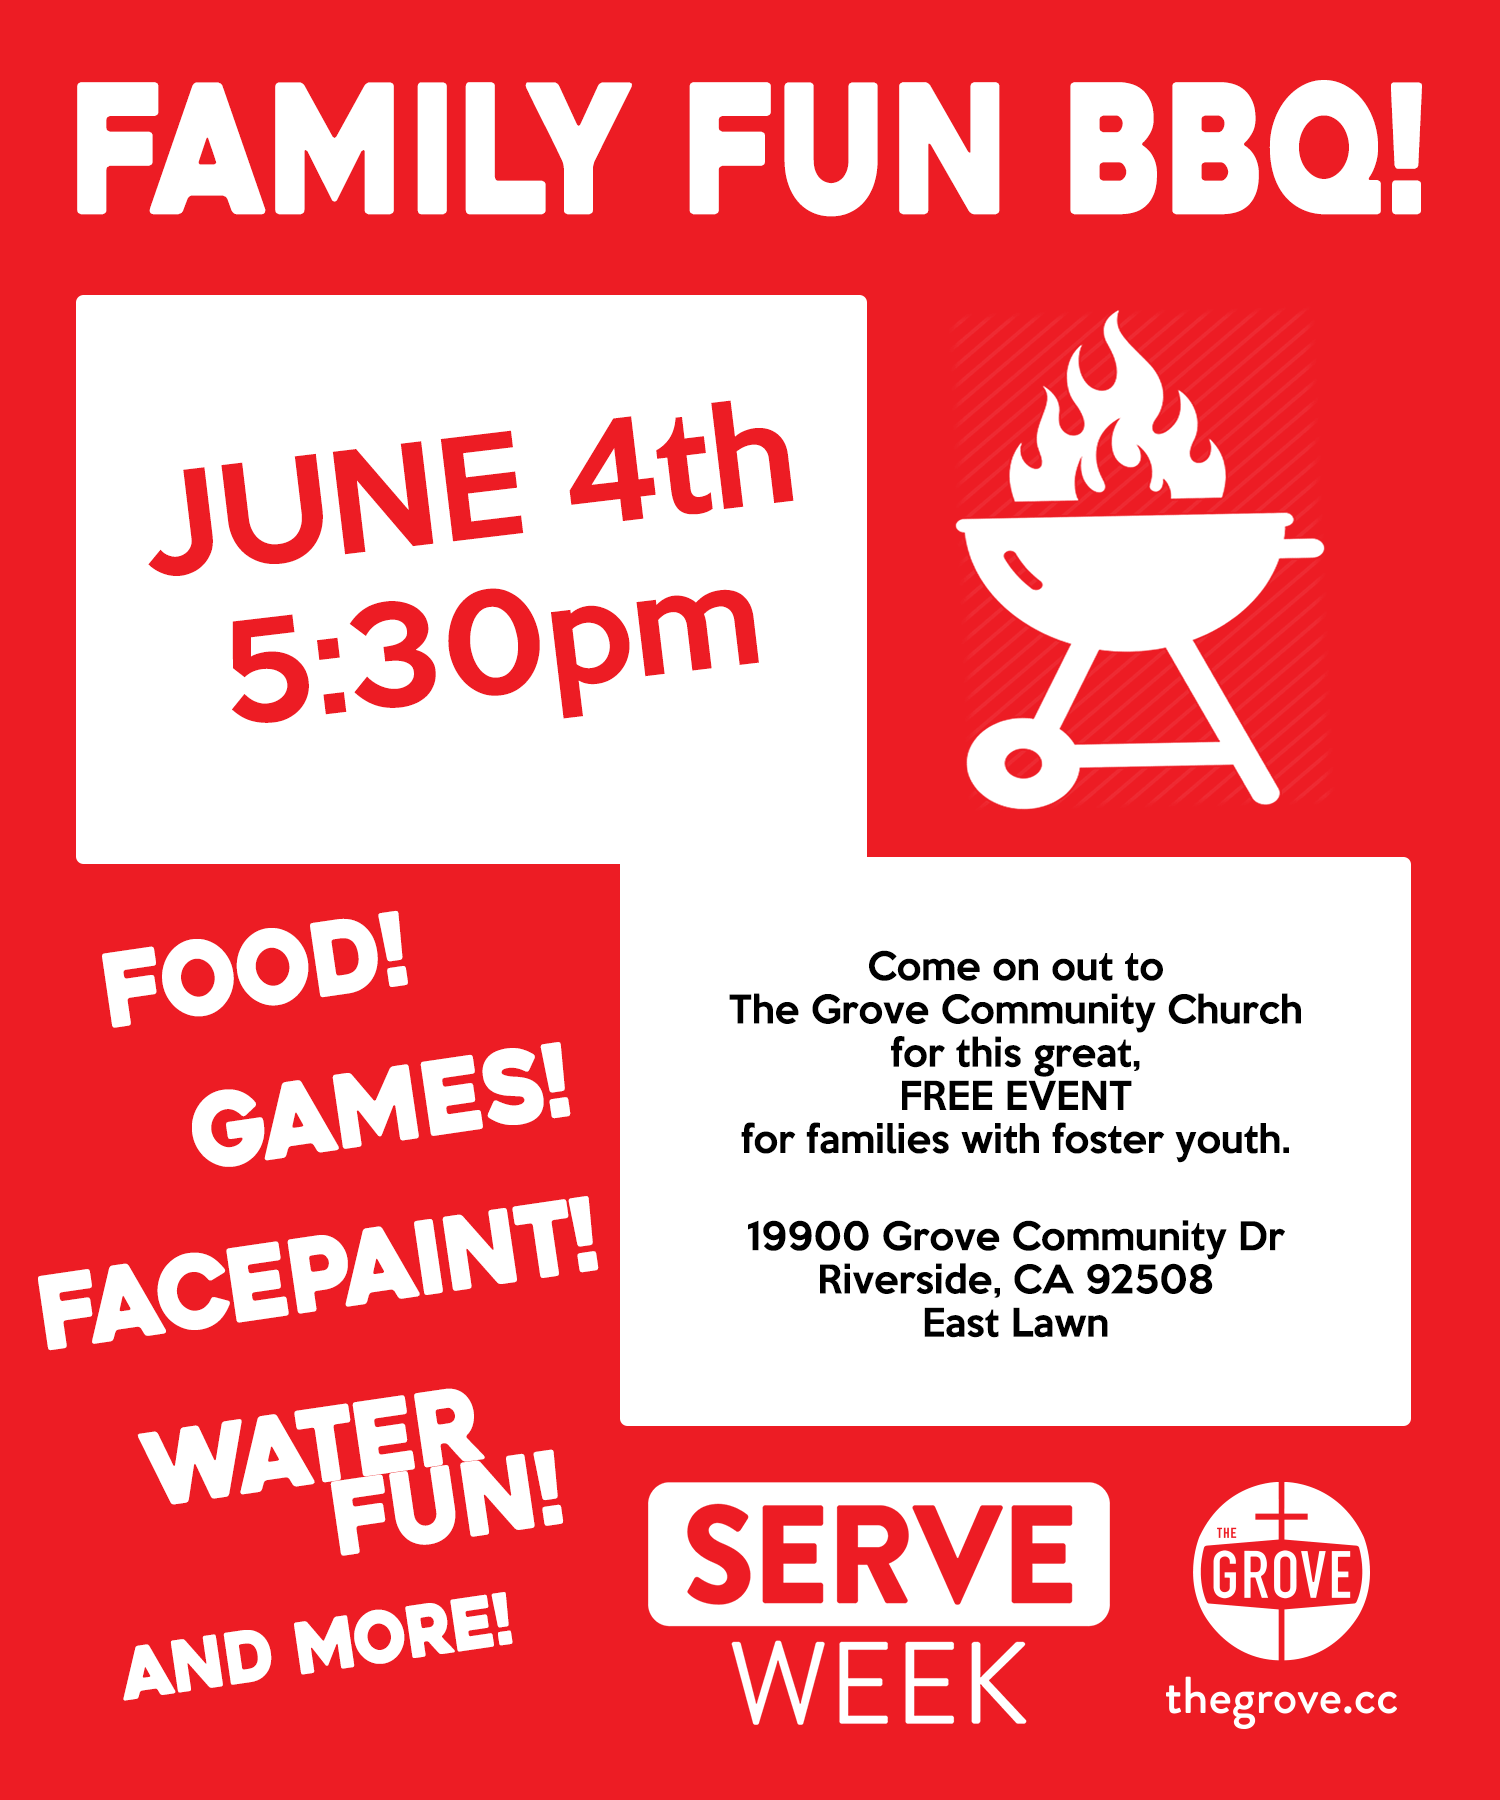 The Grove Community Church Family Fun BBQ